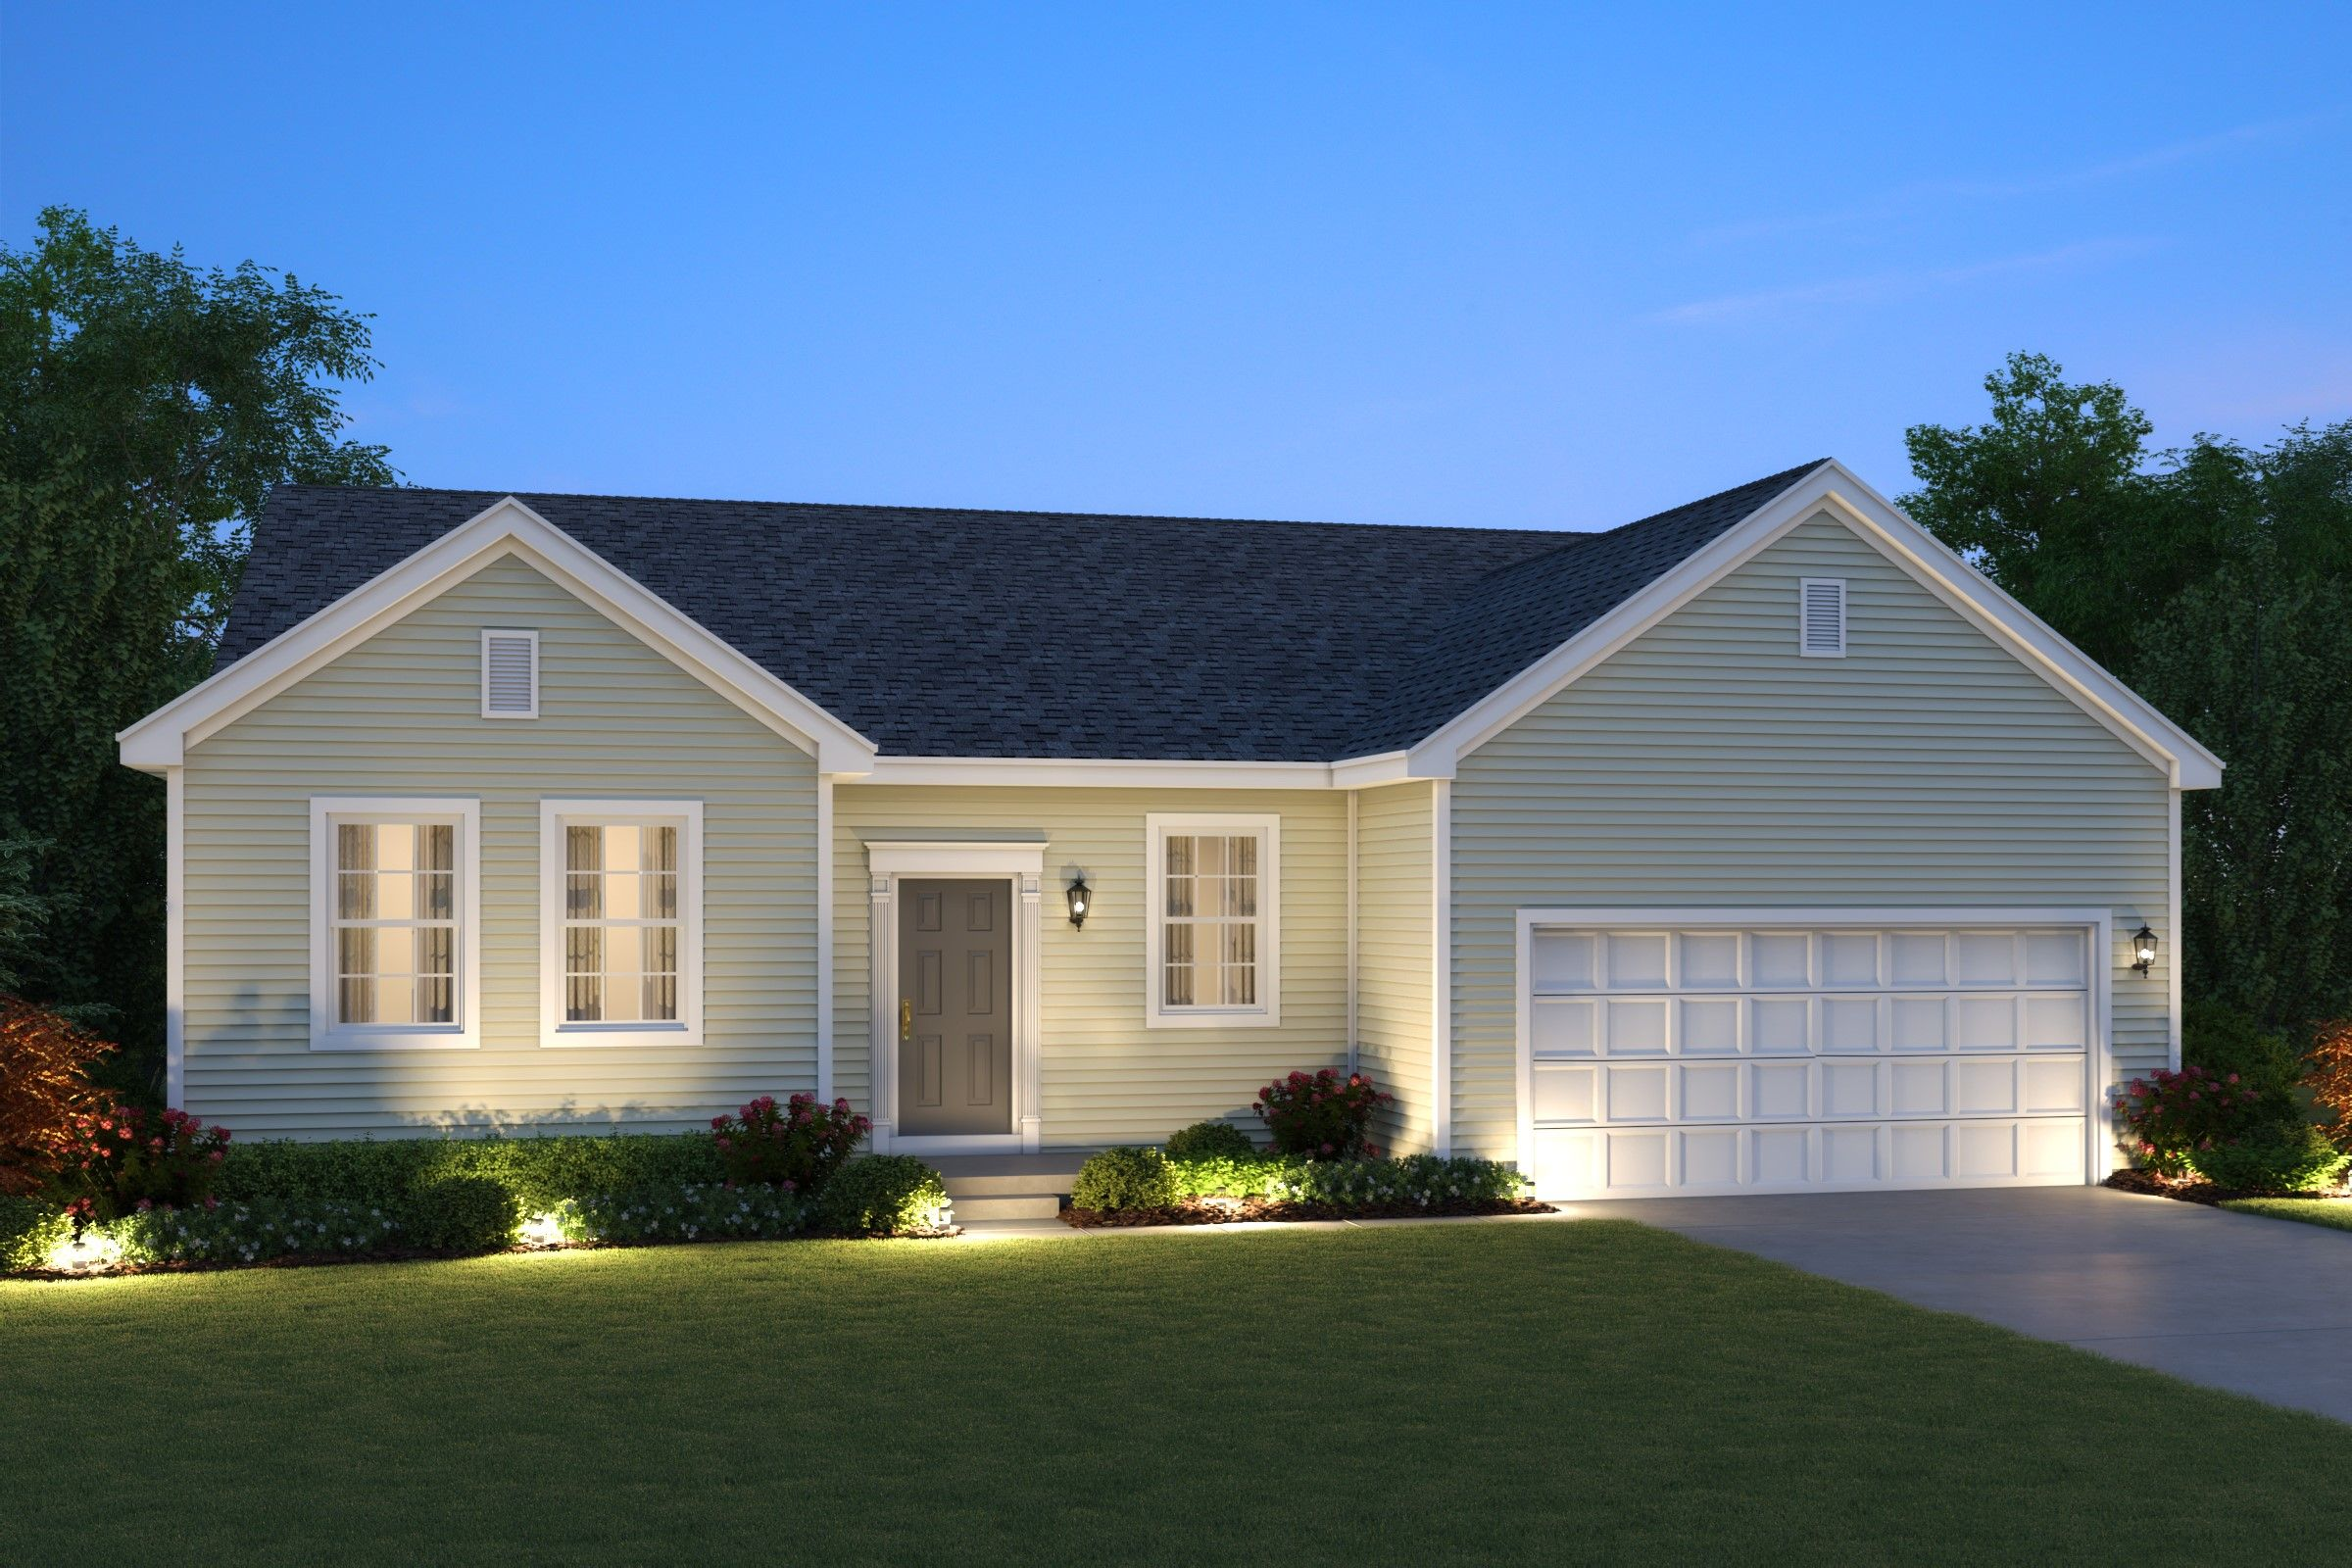 Single Family for Sale at St. Michaels 837 Alden Drive, Homesite 2 Sycamore, Illinois 60178 United States